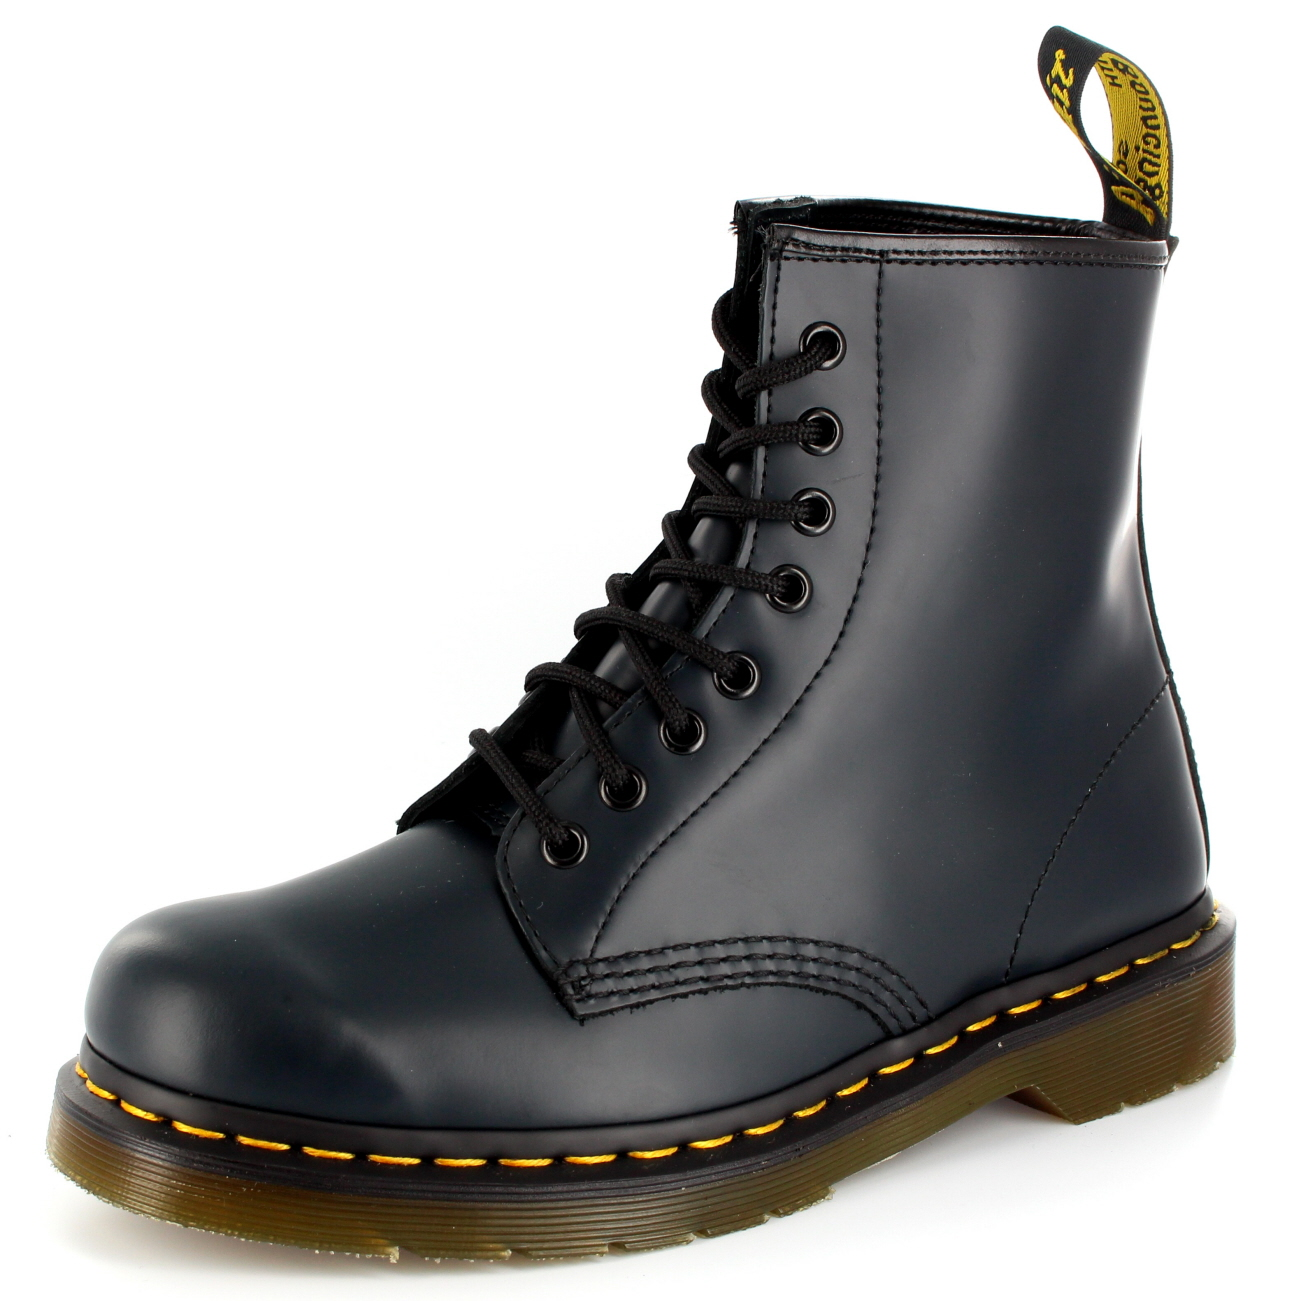 Magnum Uniform boots are ideal for men and women in occupations including police, security, emergency medical services, fire & rescue services and military. Work Safety & Industrial Magnum Work safety boots are designed to perform in the toughest work environments, ideal for industrial & construction workers, and tradesmen.